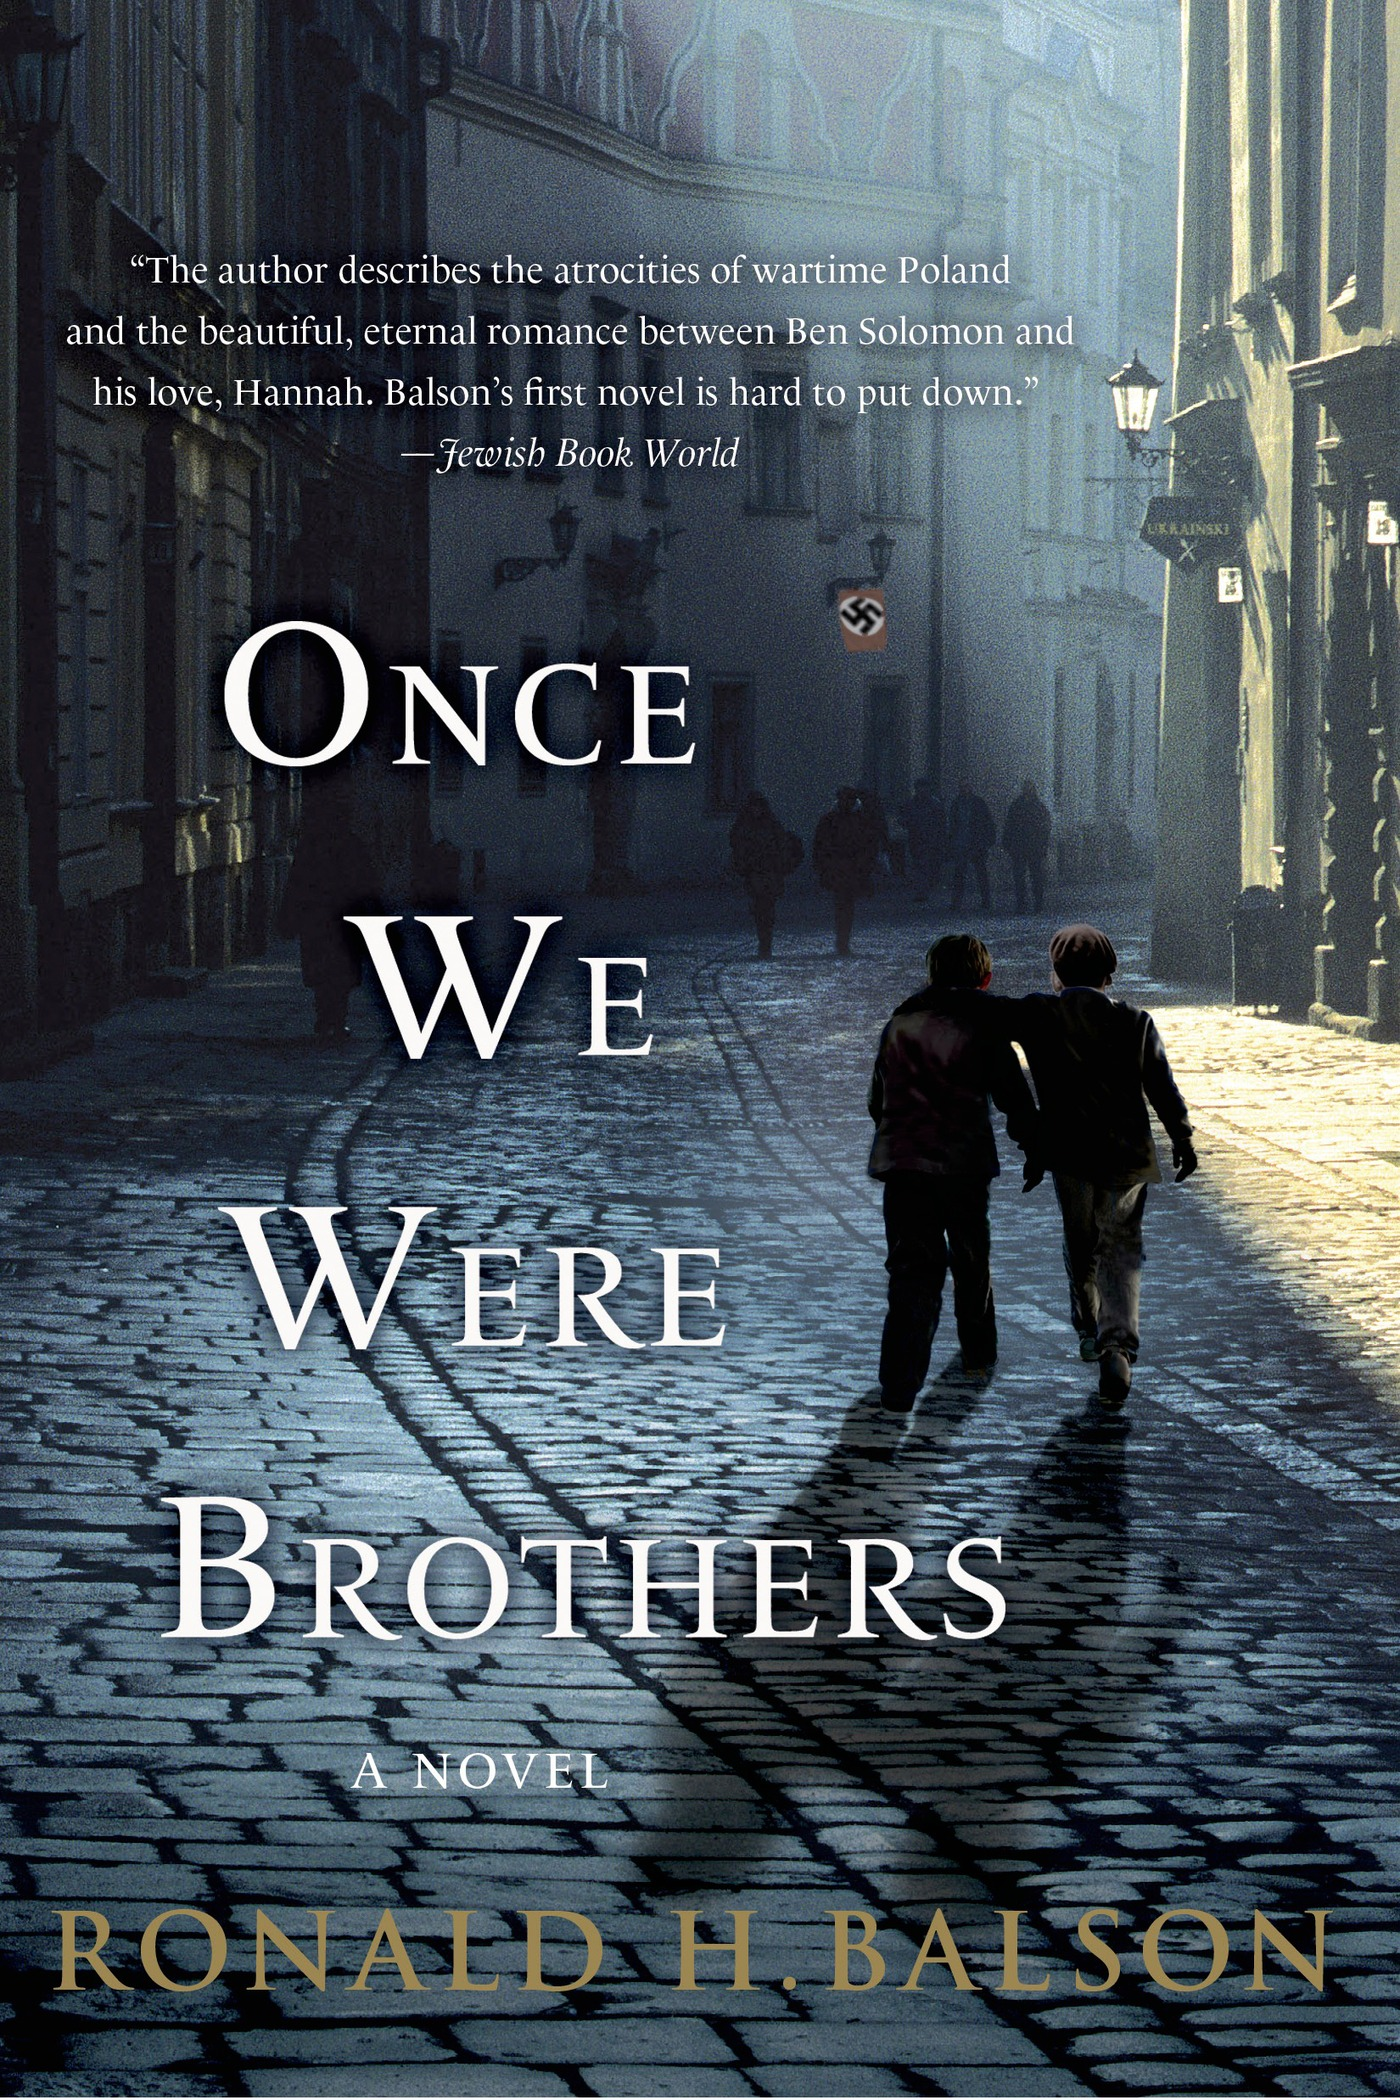 Once we were brothers cover image